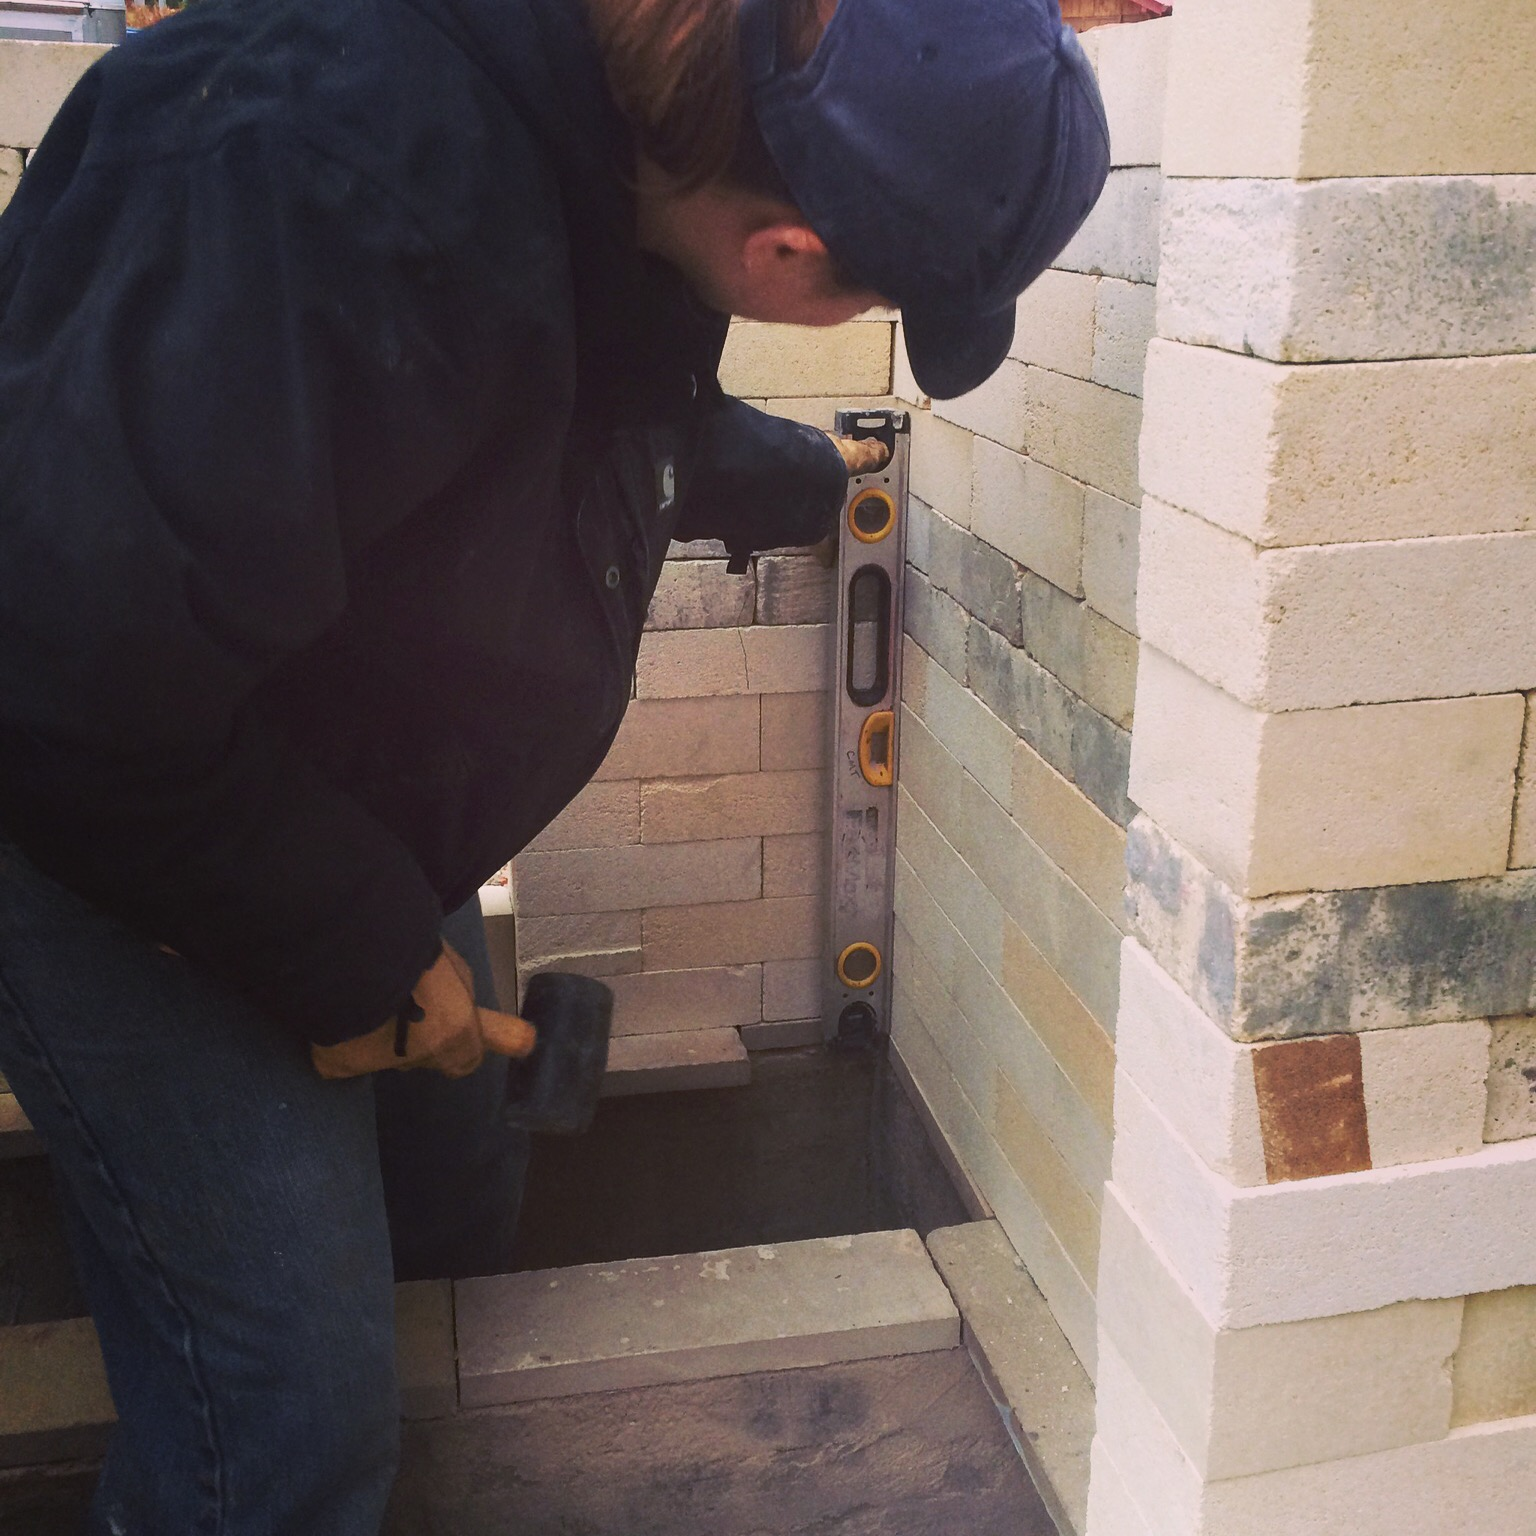 As we lay the bricks out, we ensure that we have nice straight walls by leveling them, from the inside and tapping